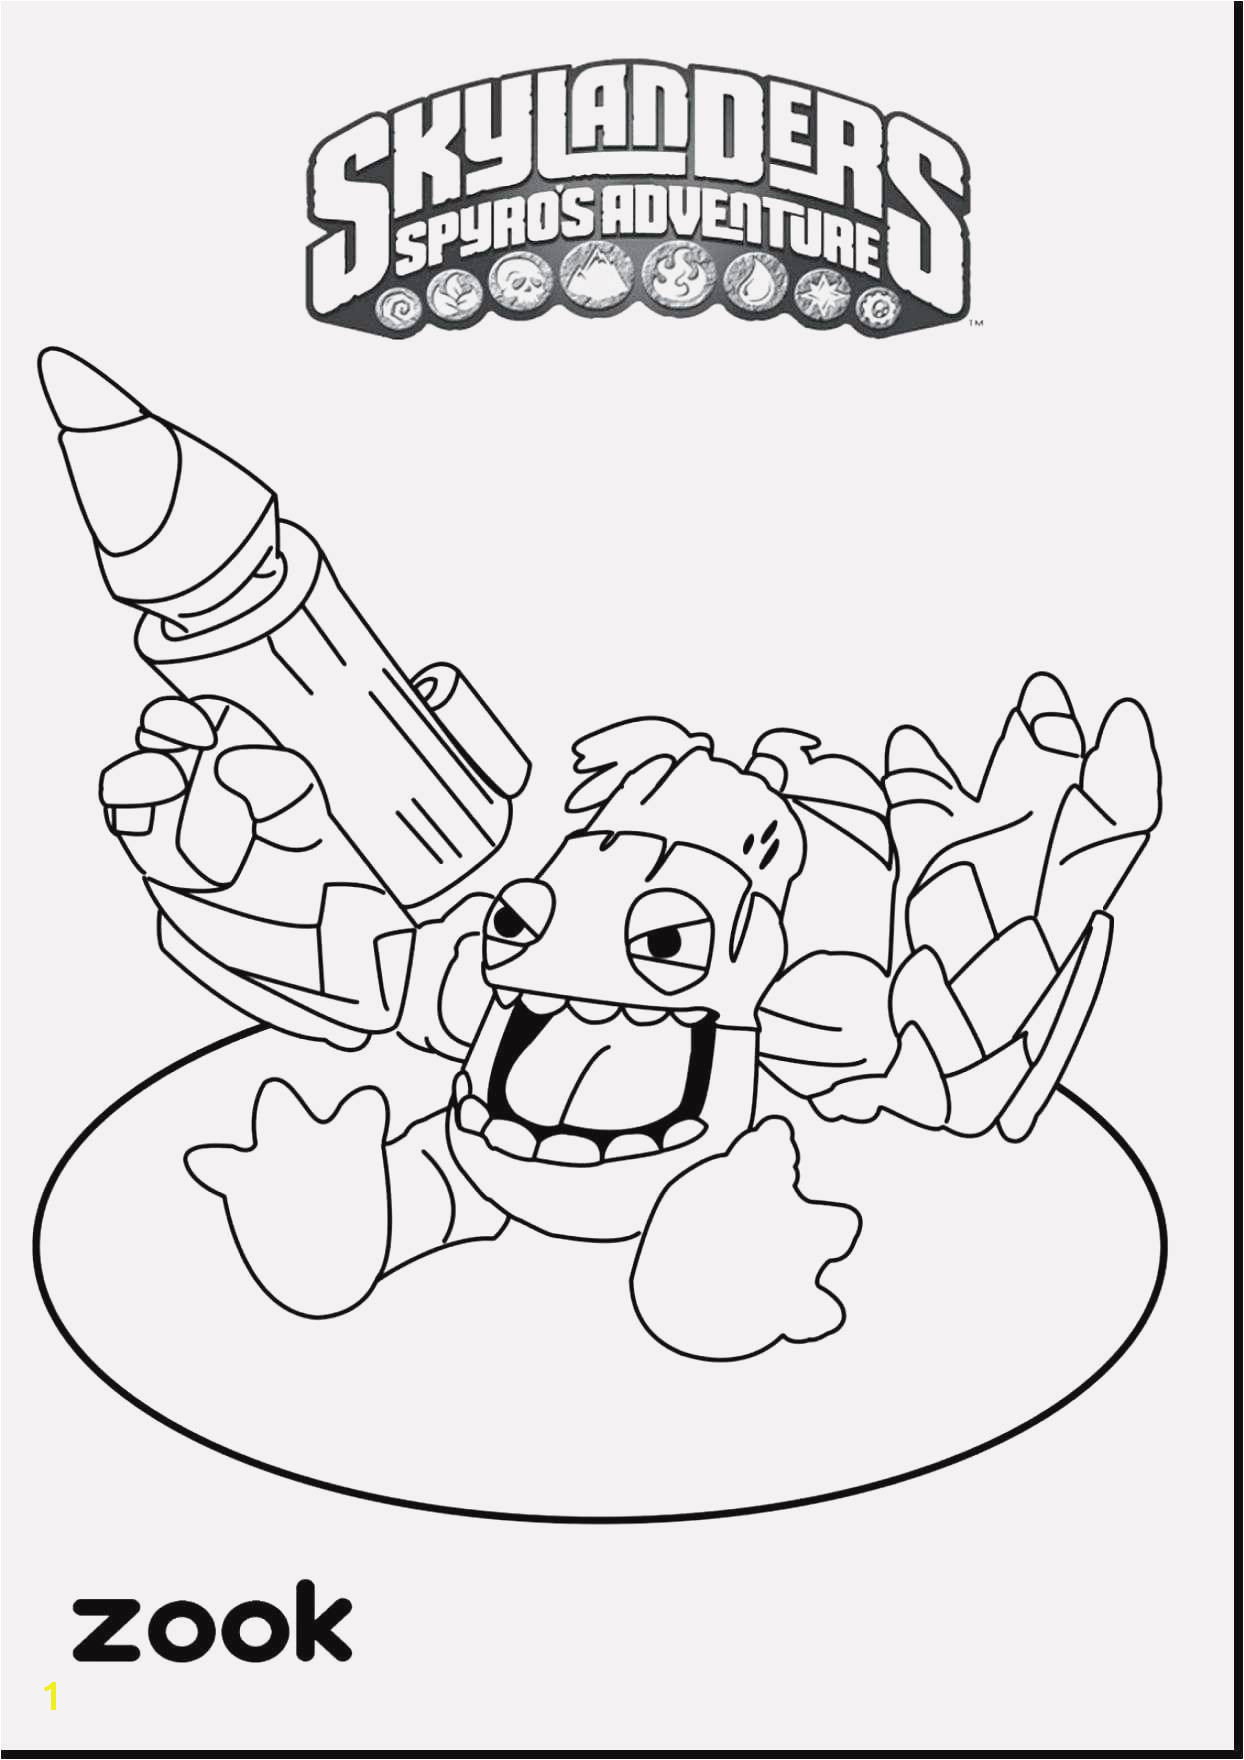 Cool Coloring Page Inspirational Witch Coloring Pages New Crayola Pages 0d Coloring Page Crayola Printable